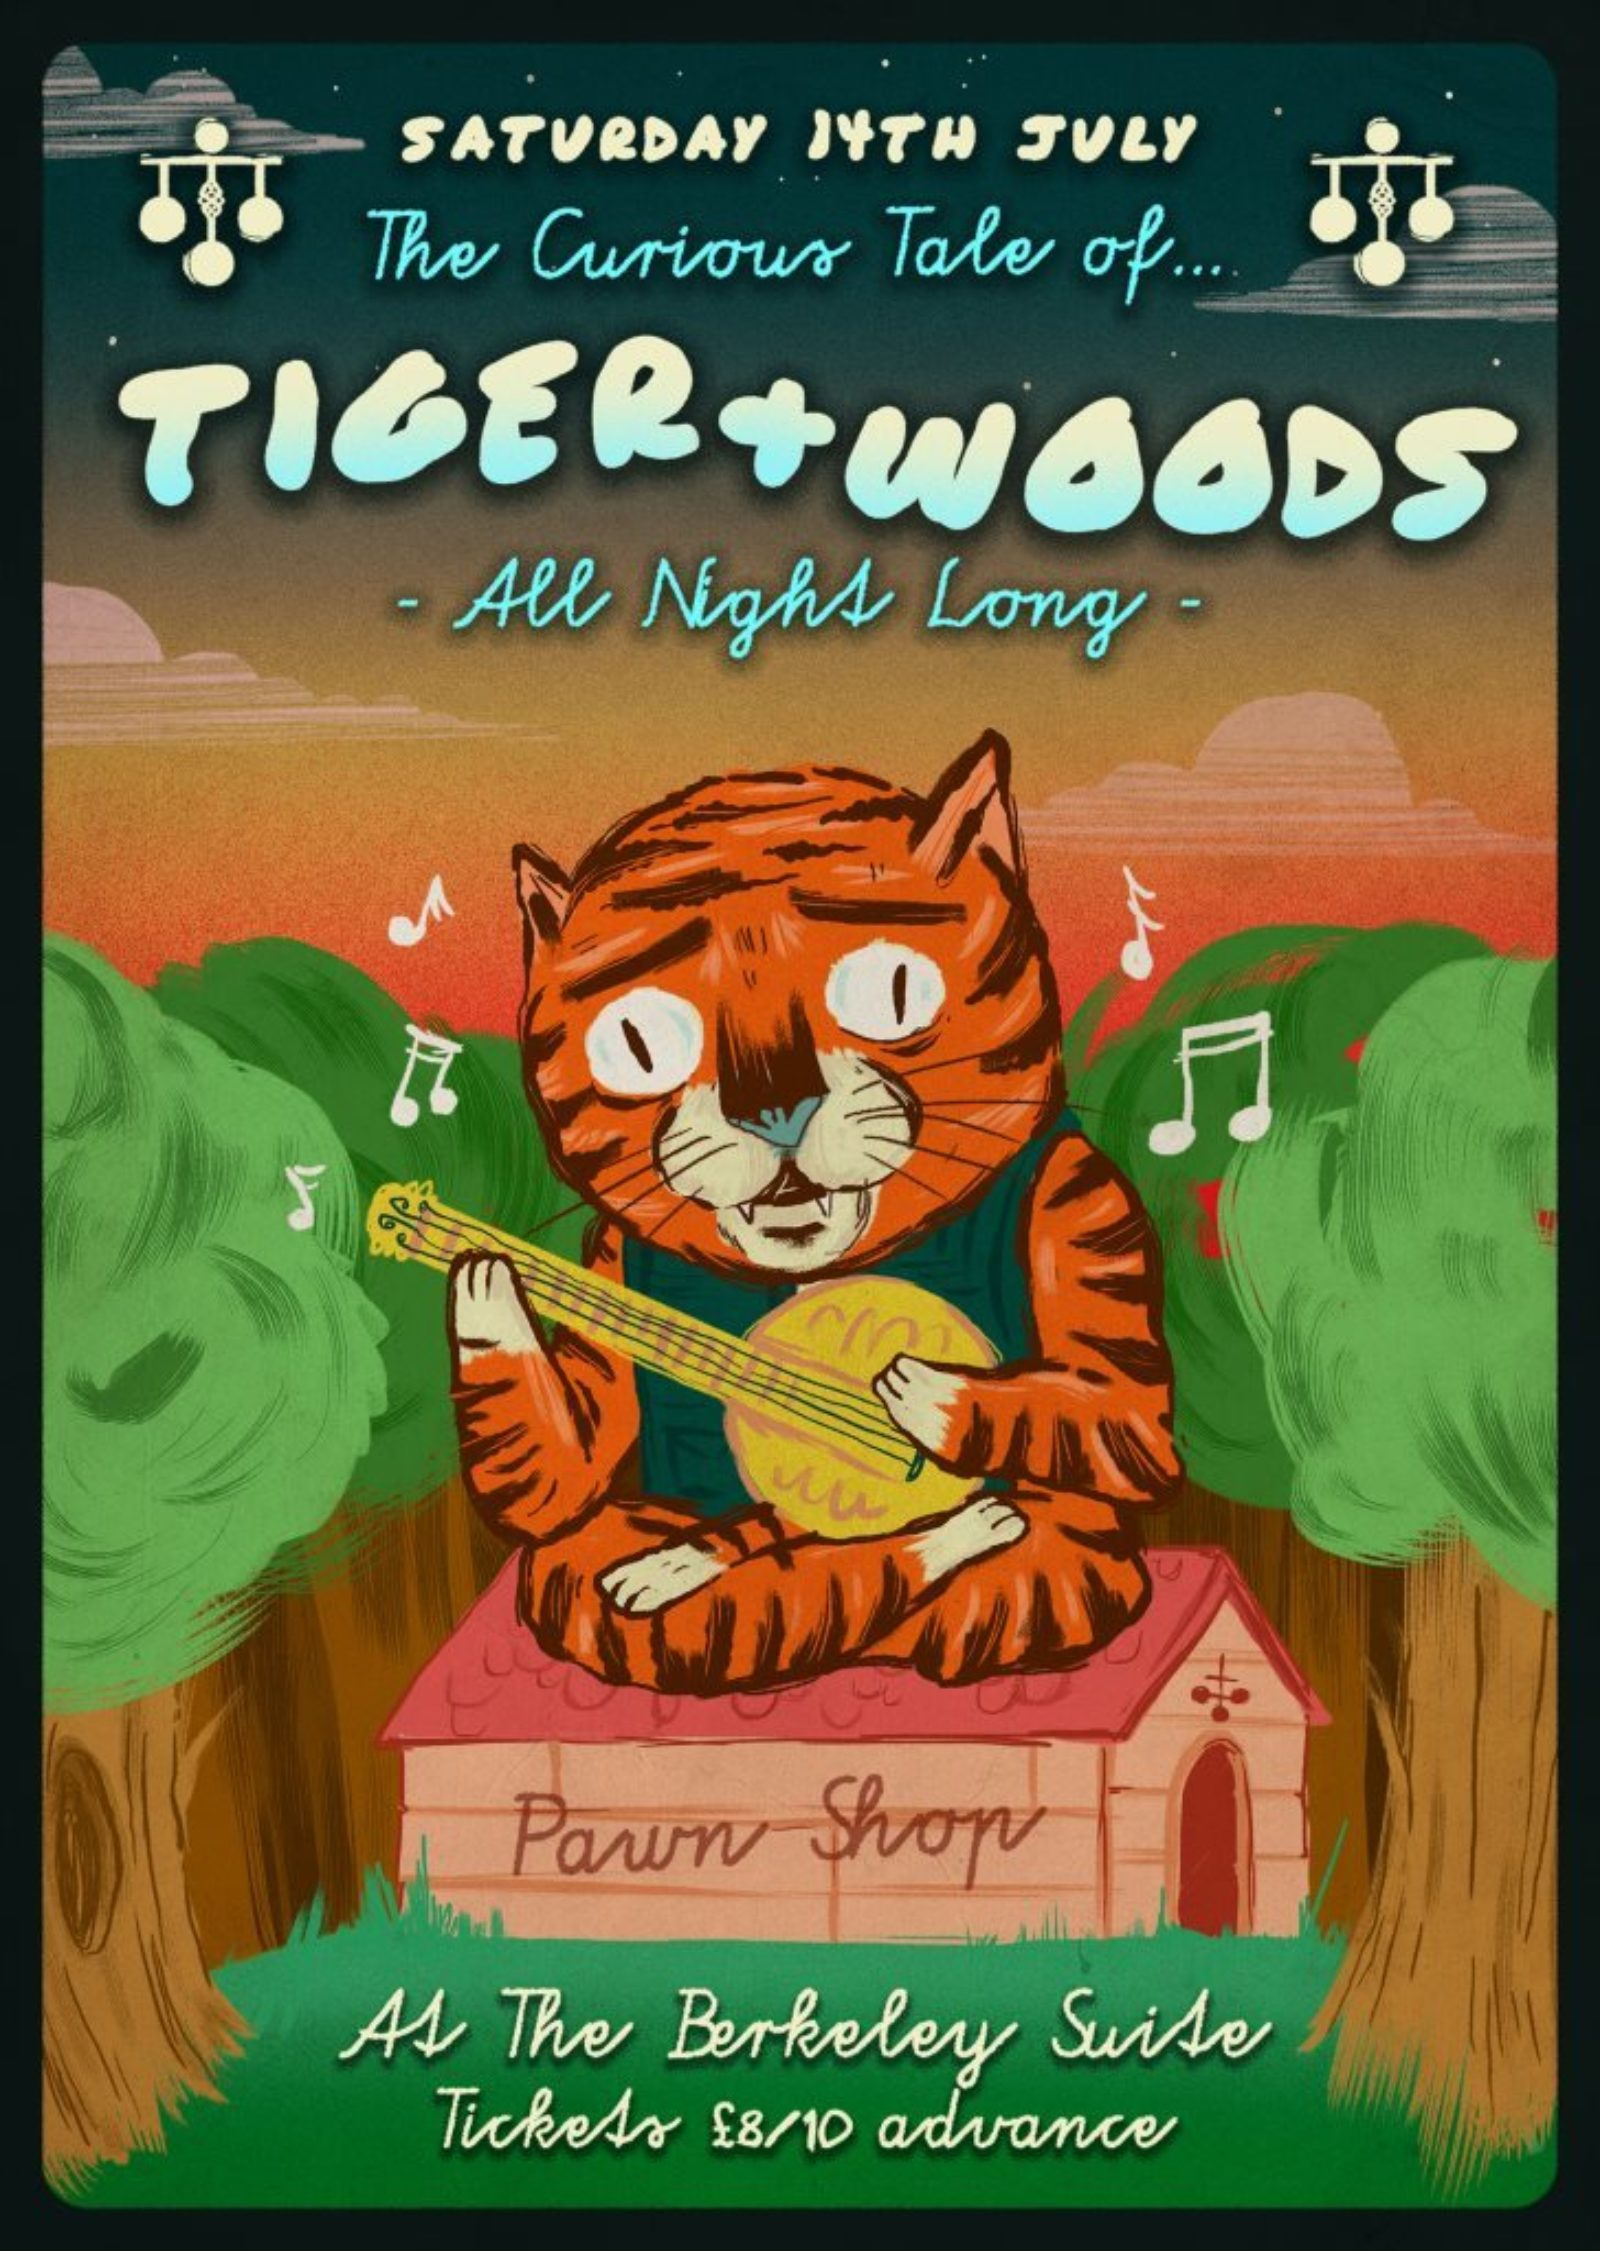 Tiger & Woods (ALL NIGHT LONG)